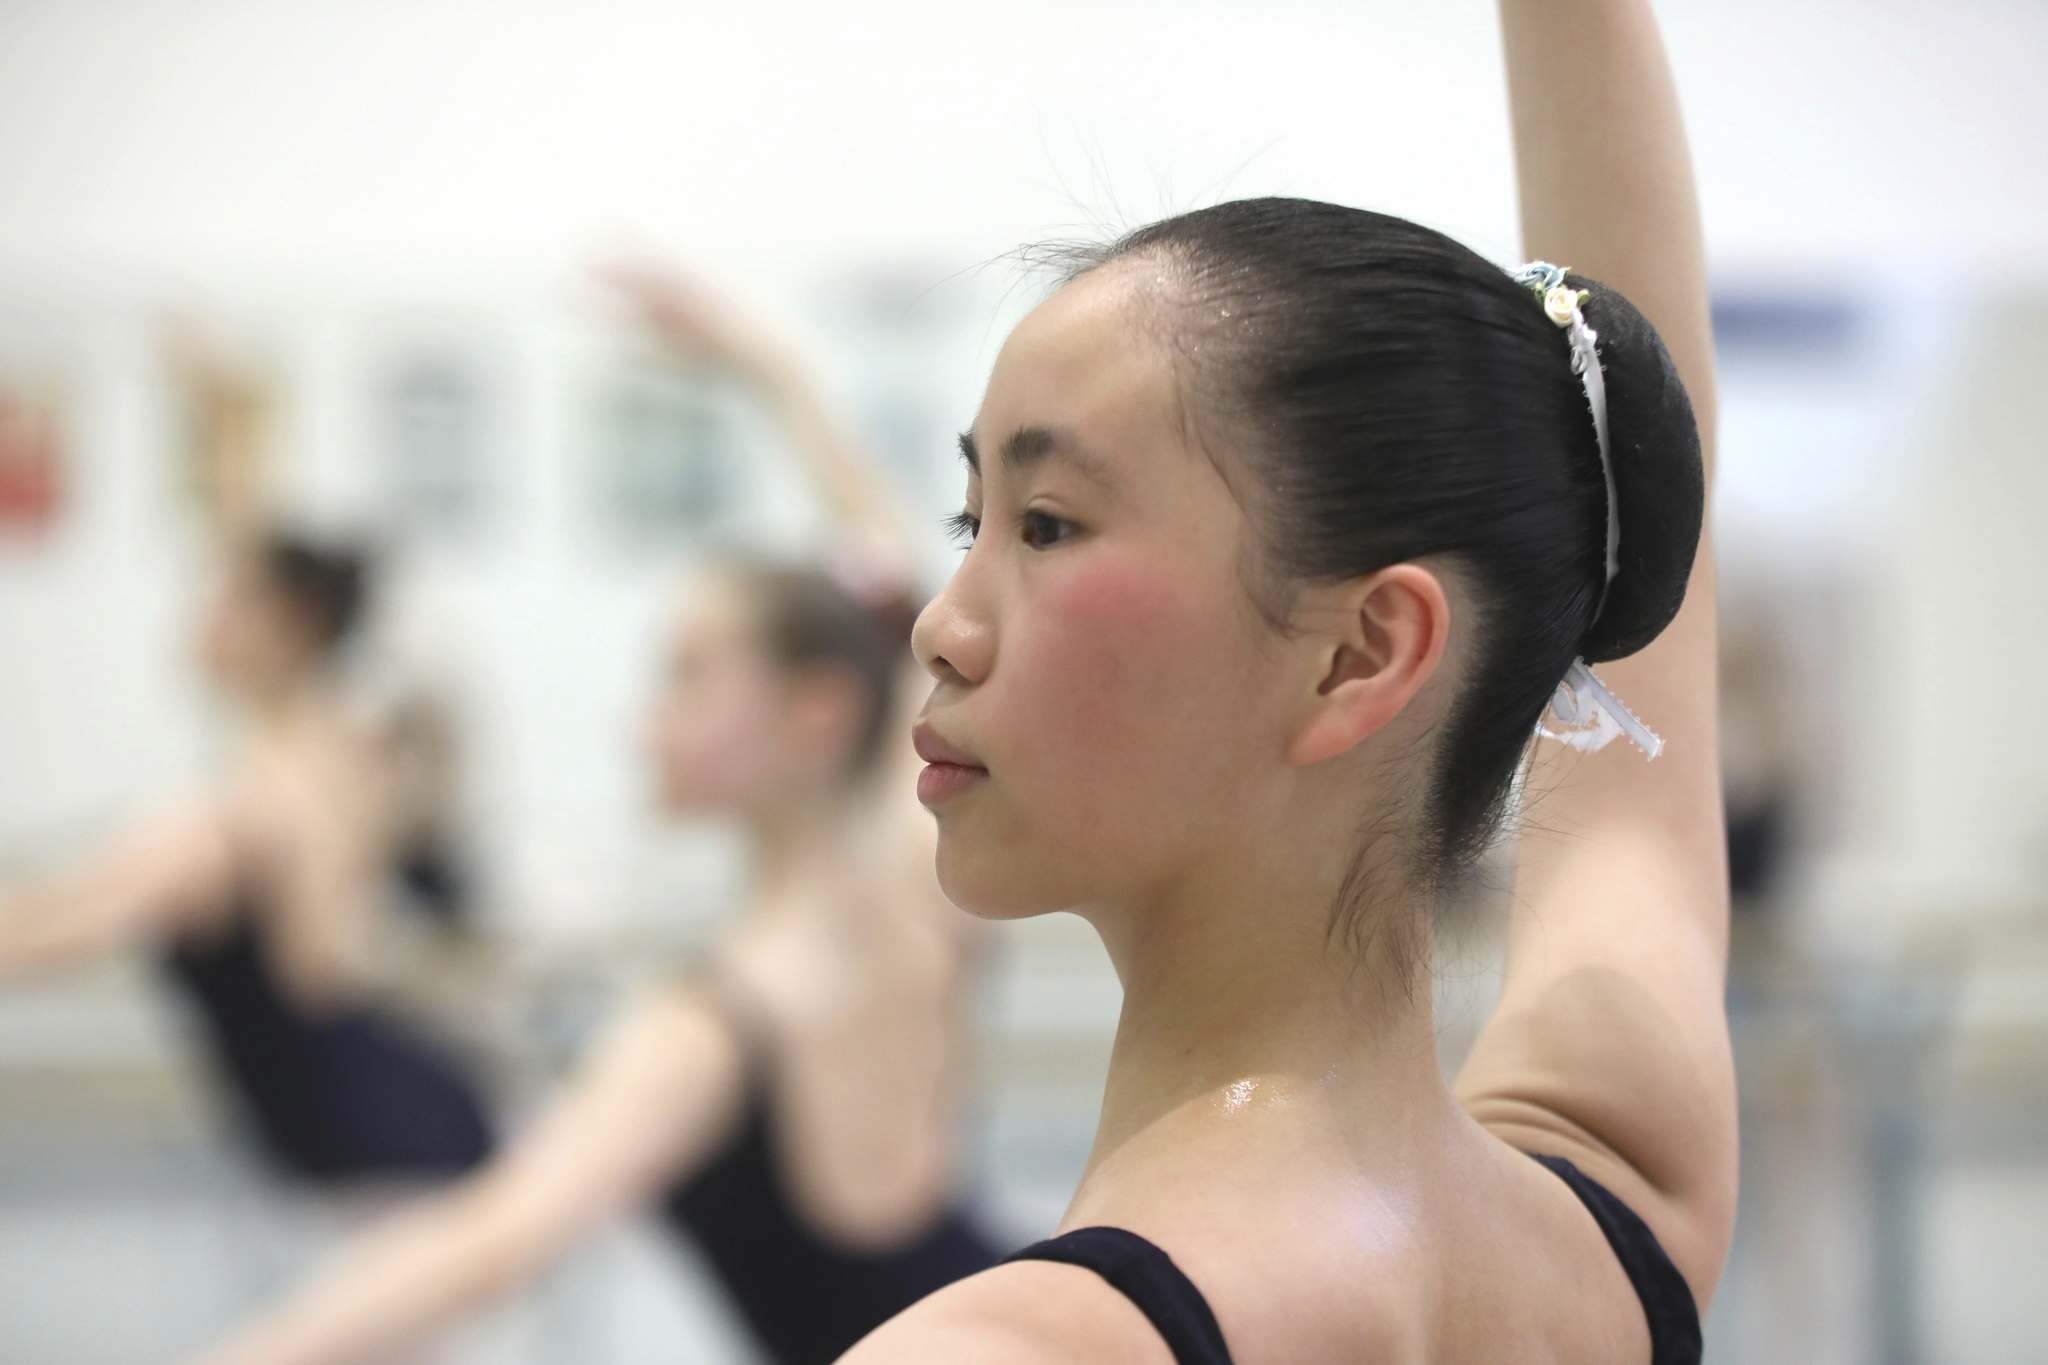 Elisha wakes up early, giving her time to roll out her muscles, stretch out her feet with a resistance band and, of course, pin her hair up into a ballet bun before making her way to the studio.